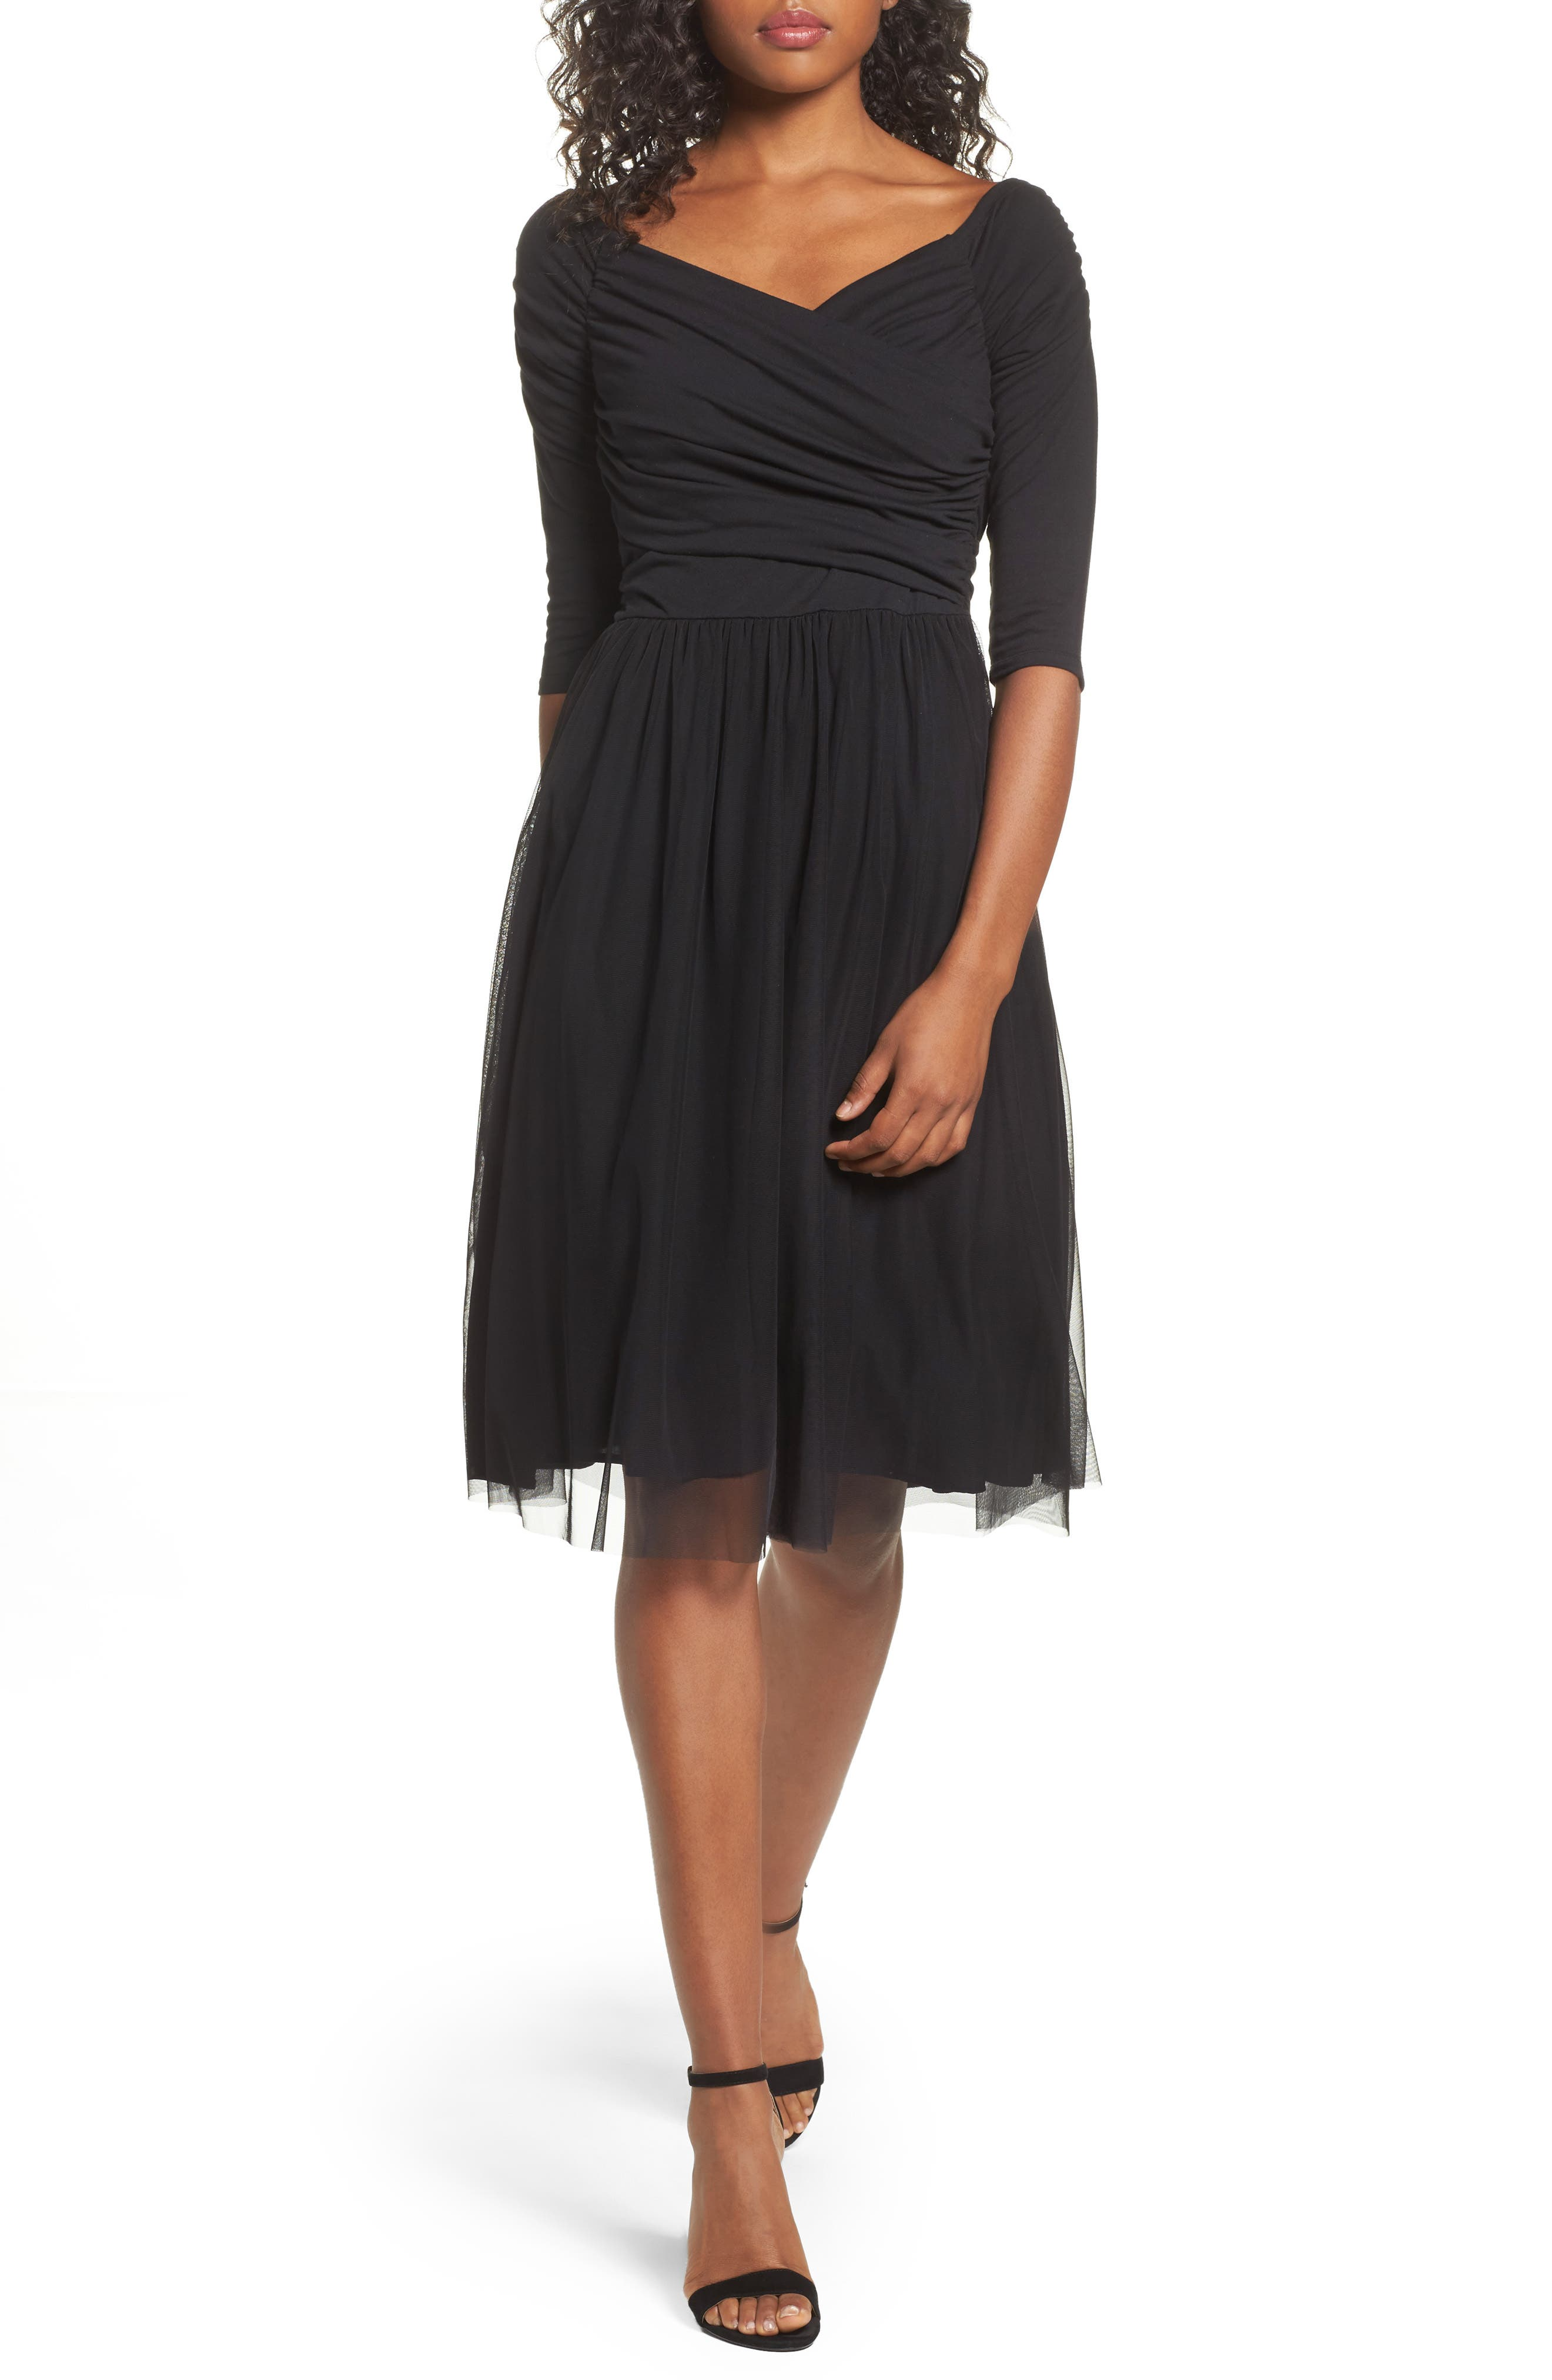 Main Image - Chelsea28 Tulle Fit & Flare Dress